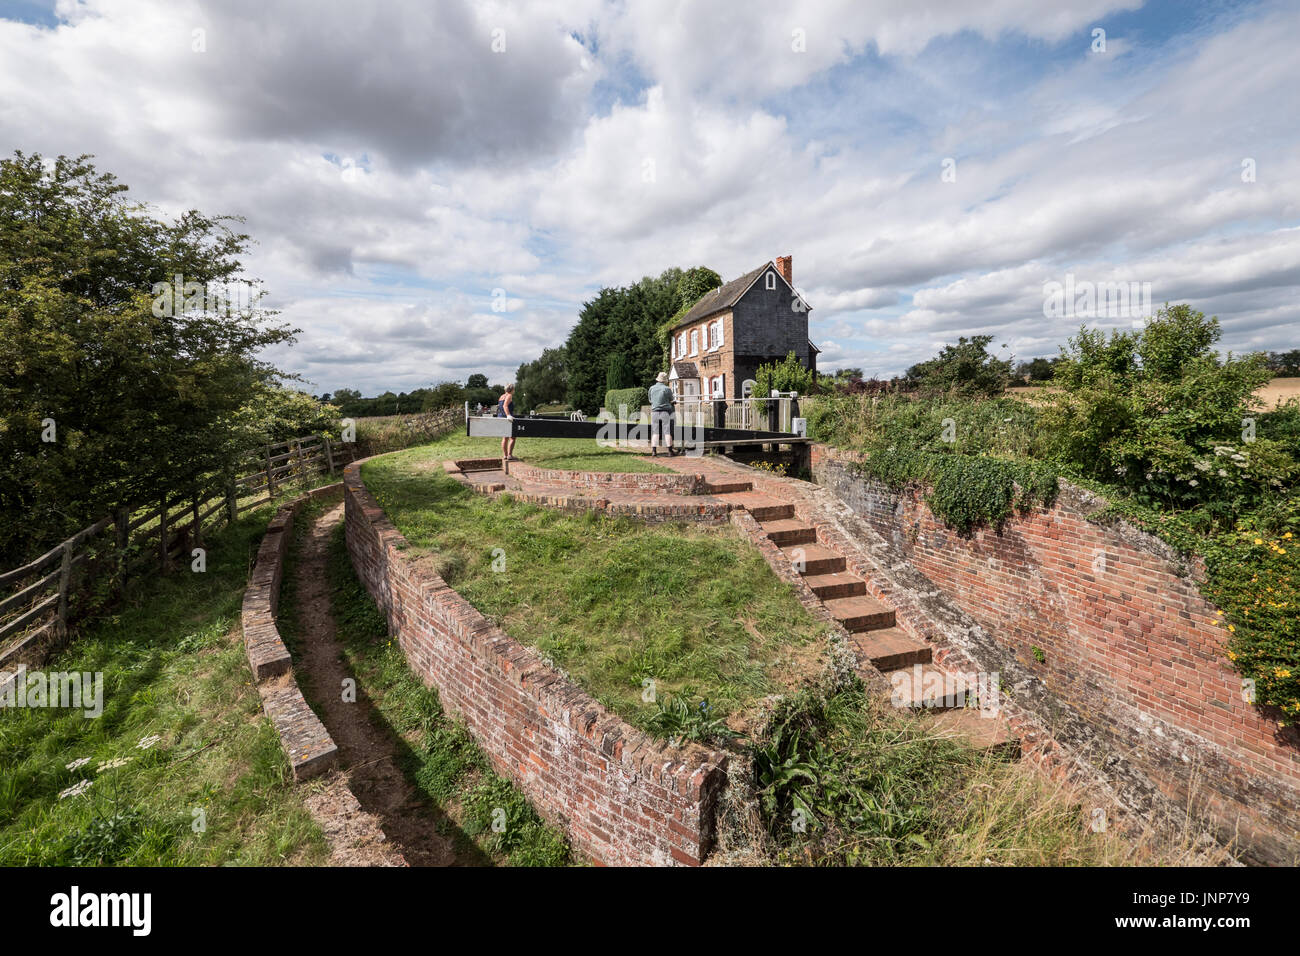 Somerton Deep Lock on the Oxford Canal, Oxfordshire, UK. - Stock Image